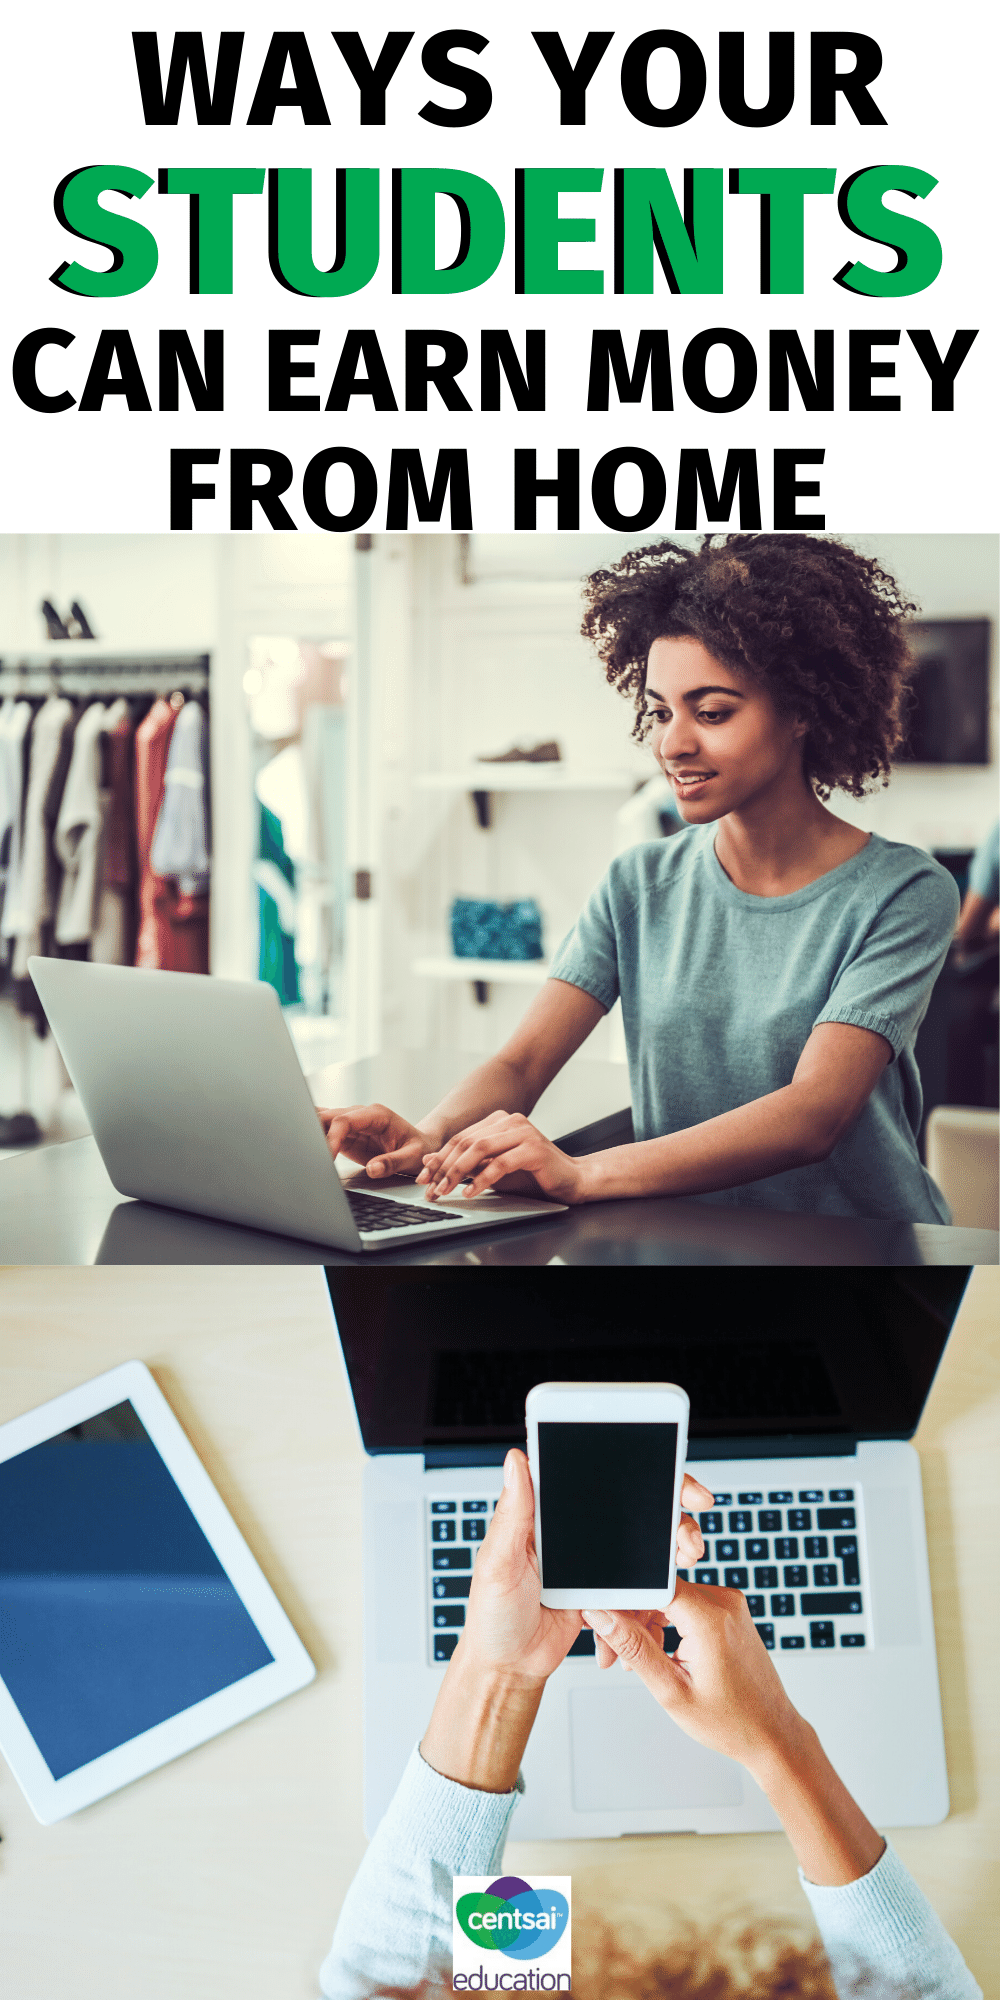 This is a great list of ways your students (or you!) can work from home and earn some extra cash.